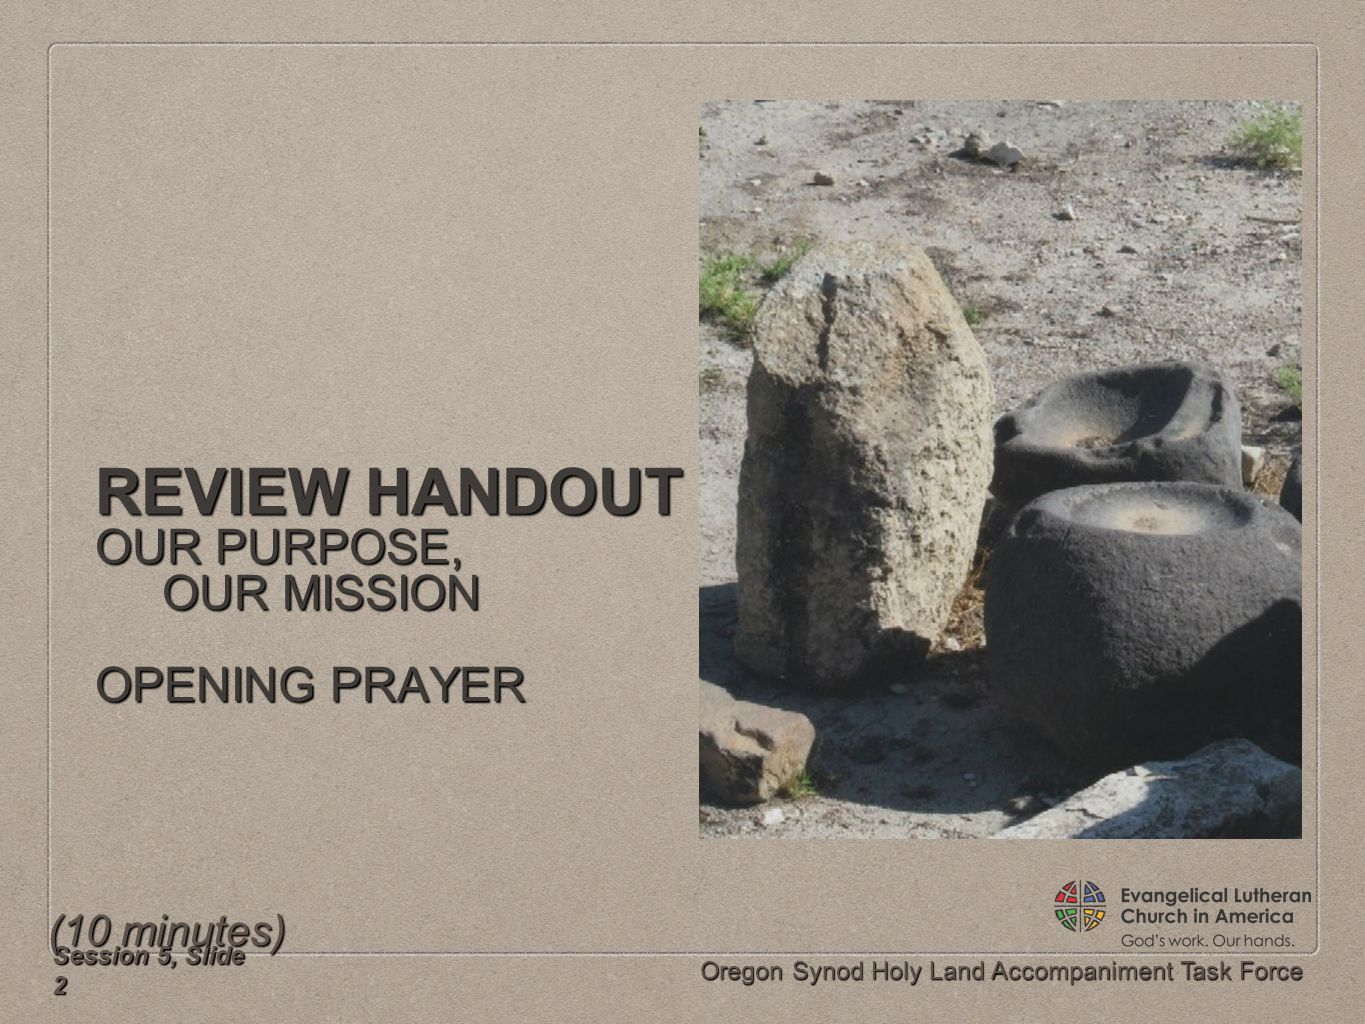 Oregon Synod Holy Land Accompaniment Task Force REVIEW HANDOUT OUR PURPOSE, OUR MISSION OUR MISSION OPENING PRAYER Session 5, Slide 2 (10 minutes)